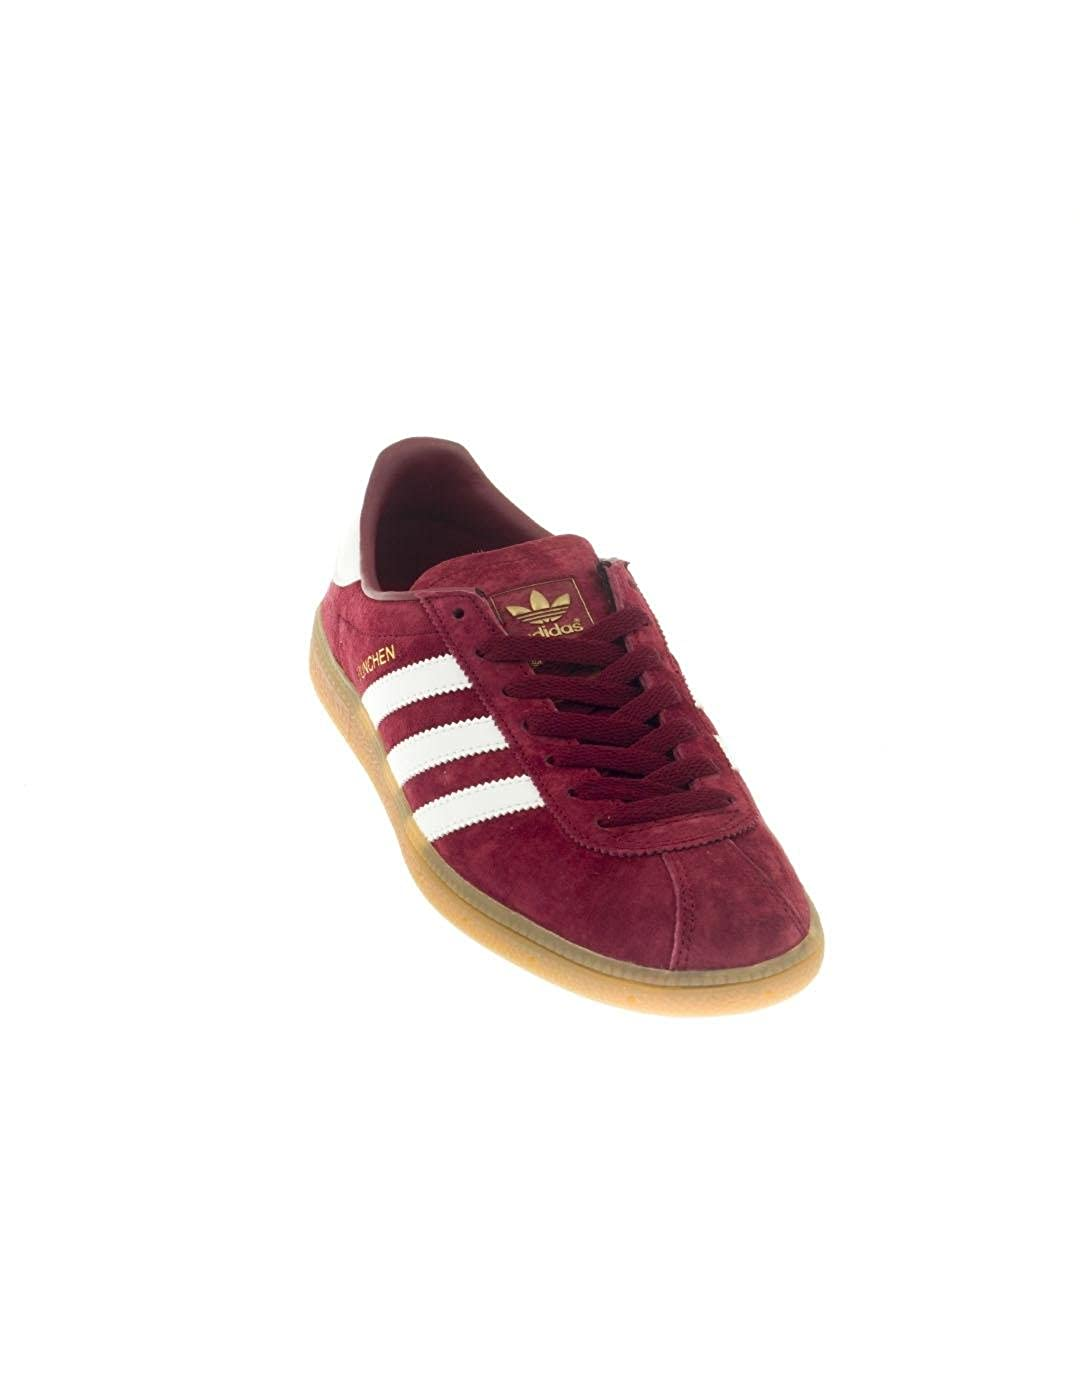 huge discount eb086 0fa24 E Amazon Bordeaux it Borse Adidas Scarpa Scarpe Munchen nPOpgRZ